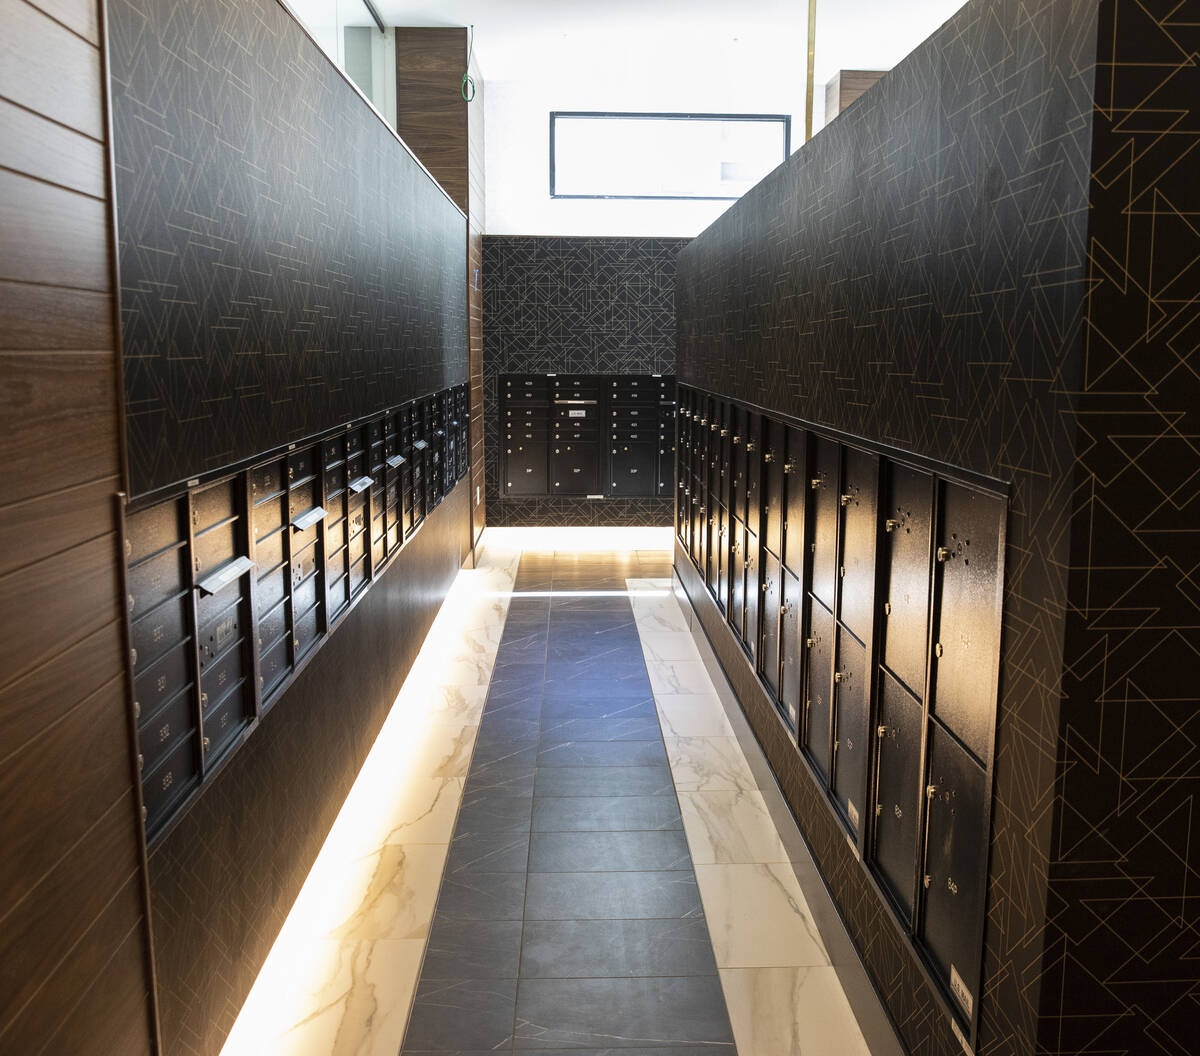 The mailroom at Auric Symphony Park, the first luxury multifamily residential community at Symp ...